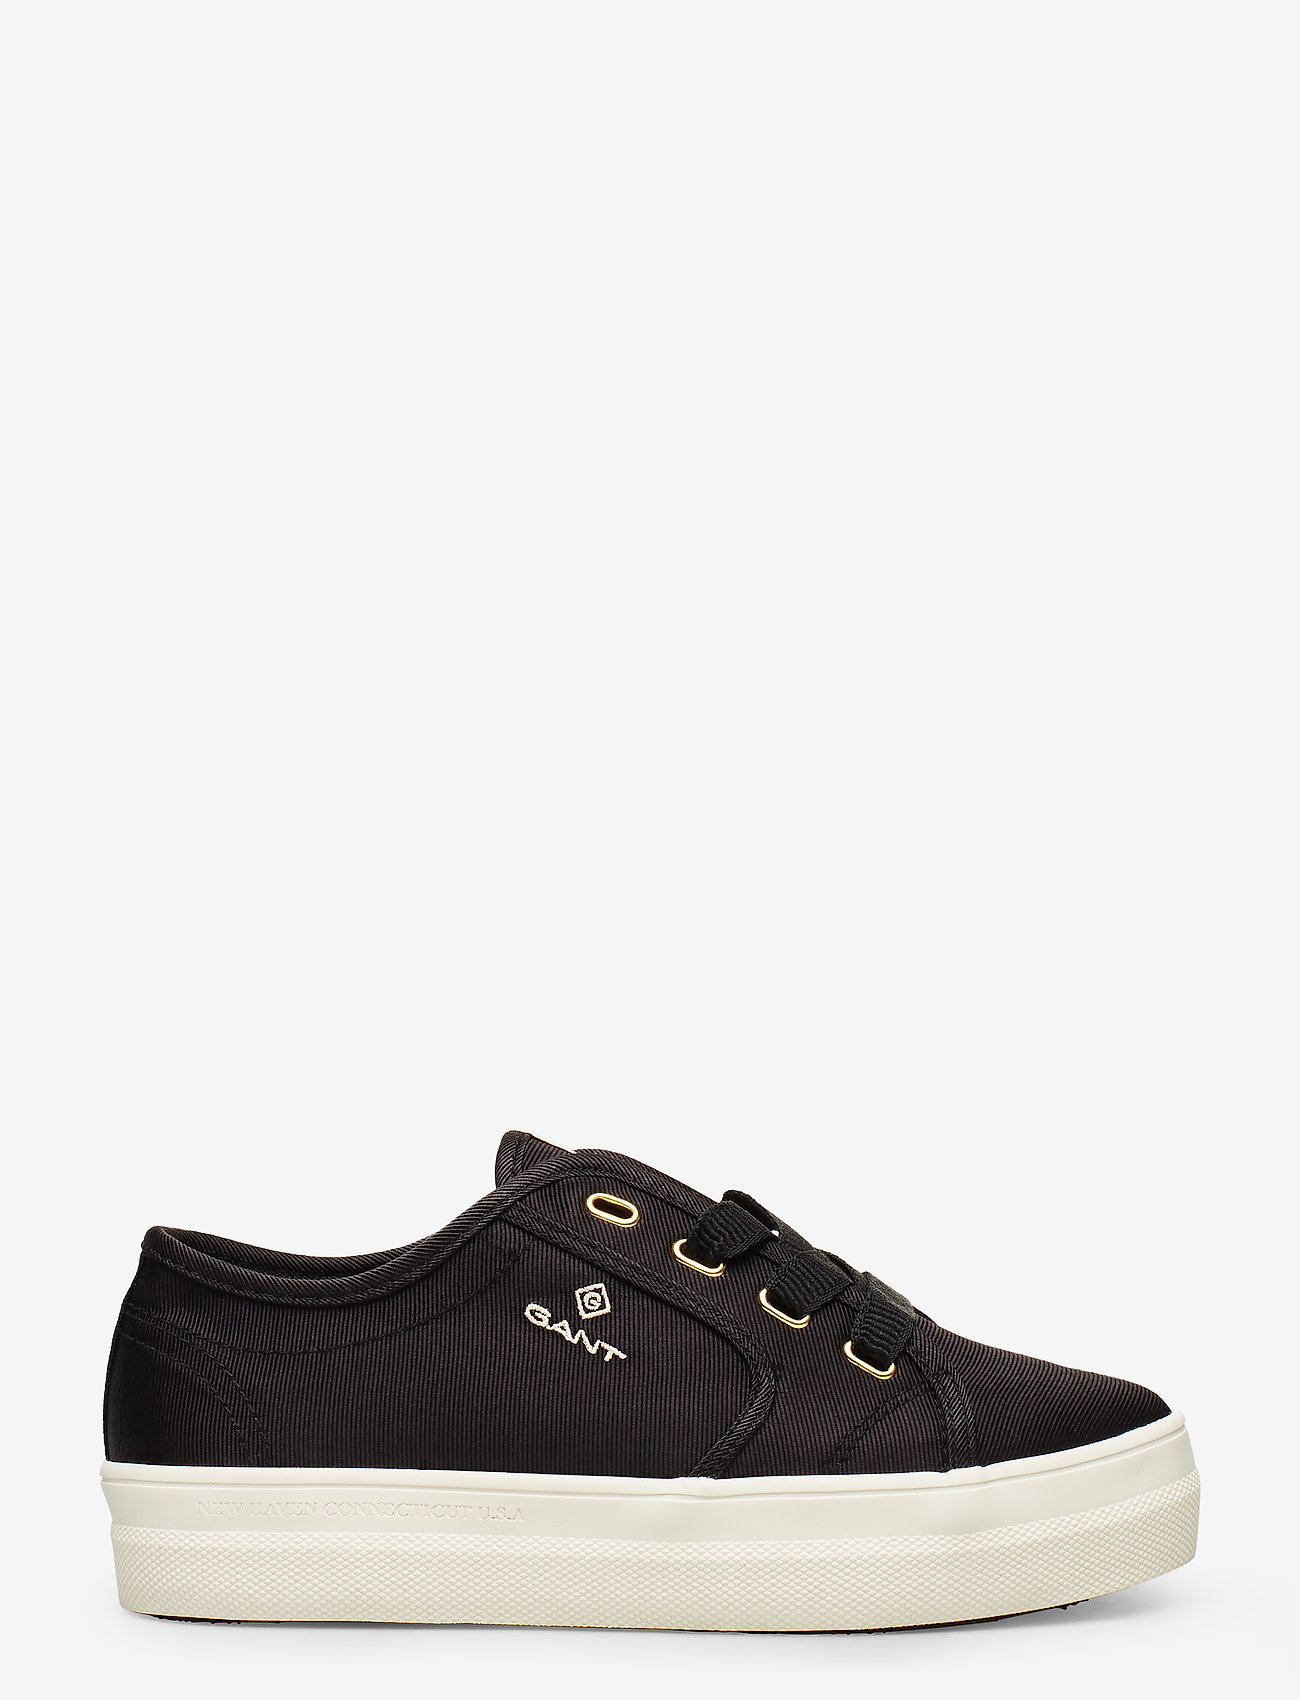 Leisha Low Lace Shoes (Black) (562.50 kr) - GANT